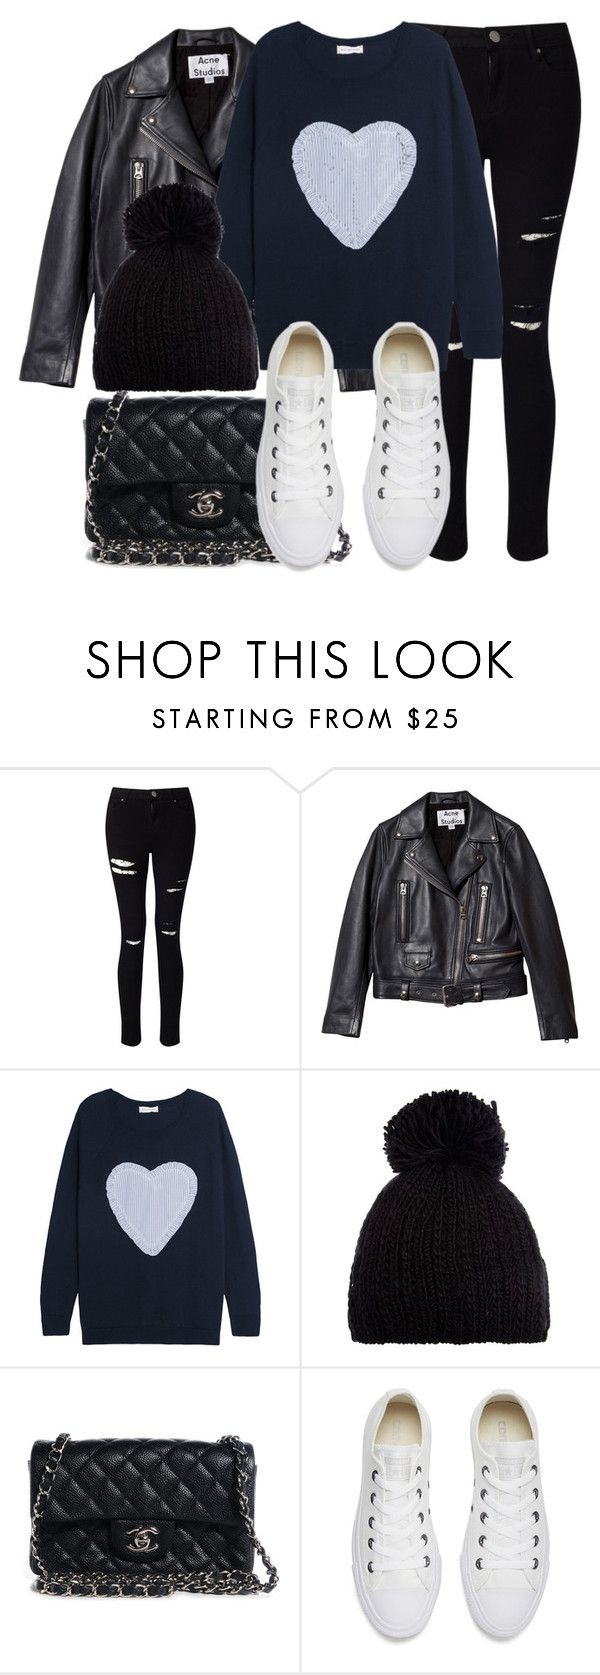 """Untitled #11808"" by vany-alvarado ❤ liked on Polyvore featuring Miss Selfridge, Acne Studios, Chinti and Parker, Barts, Chanel and Converse"